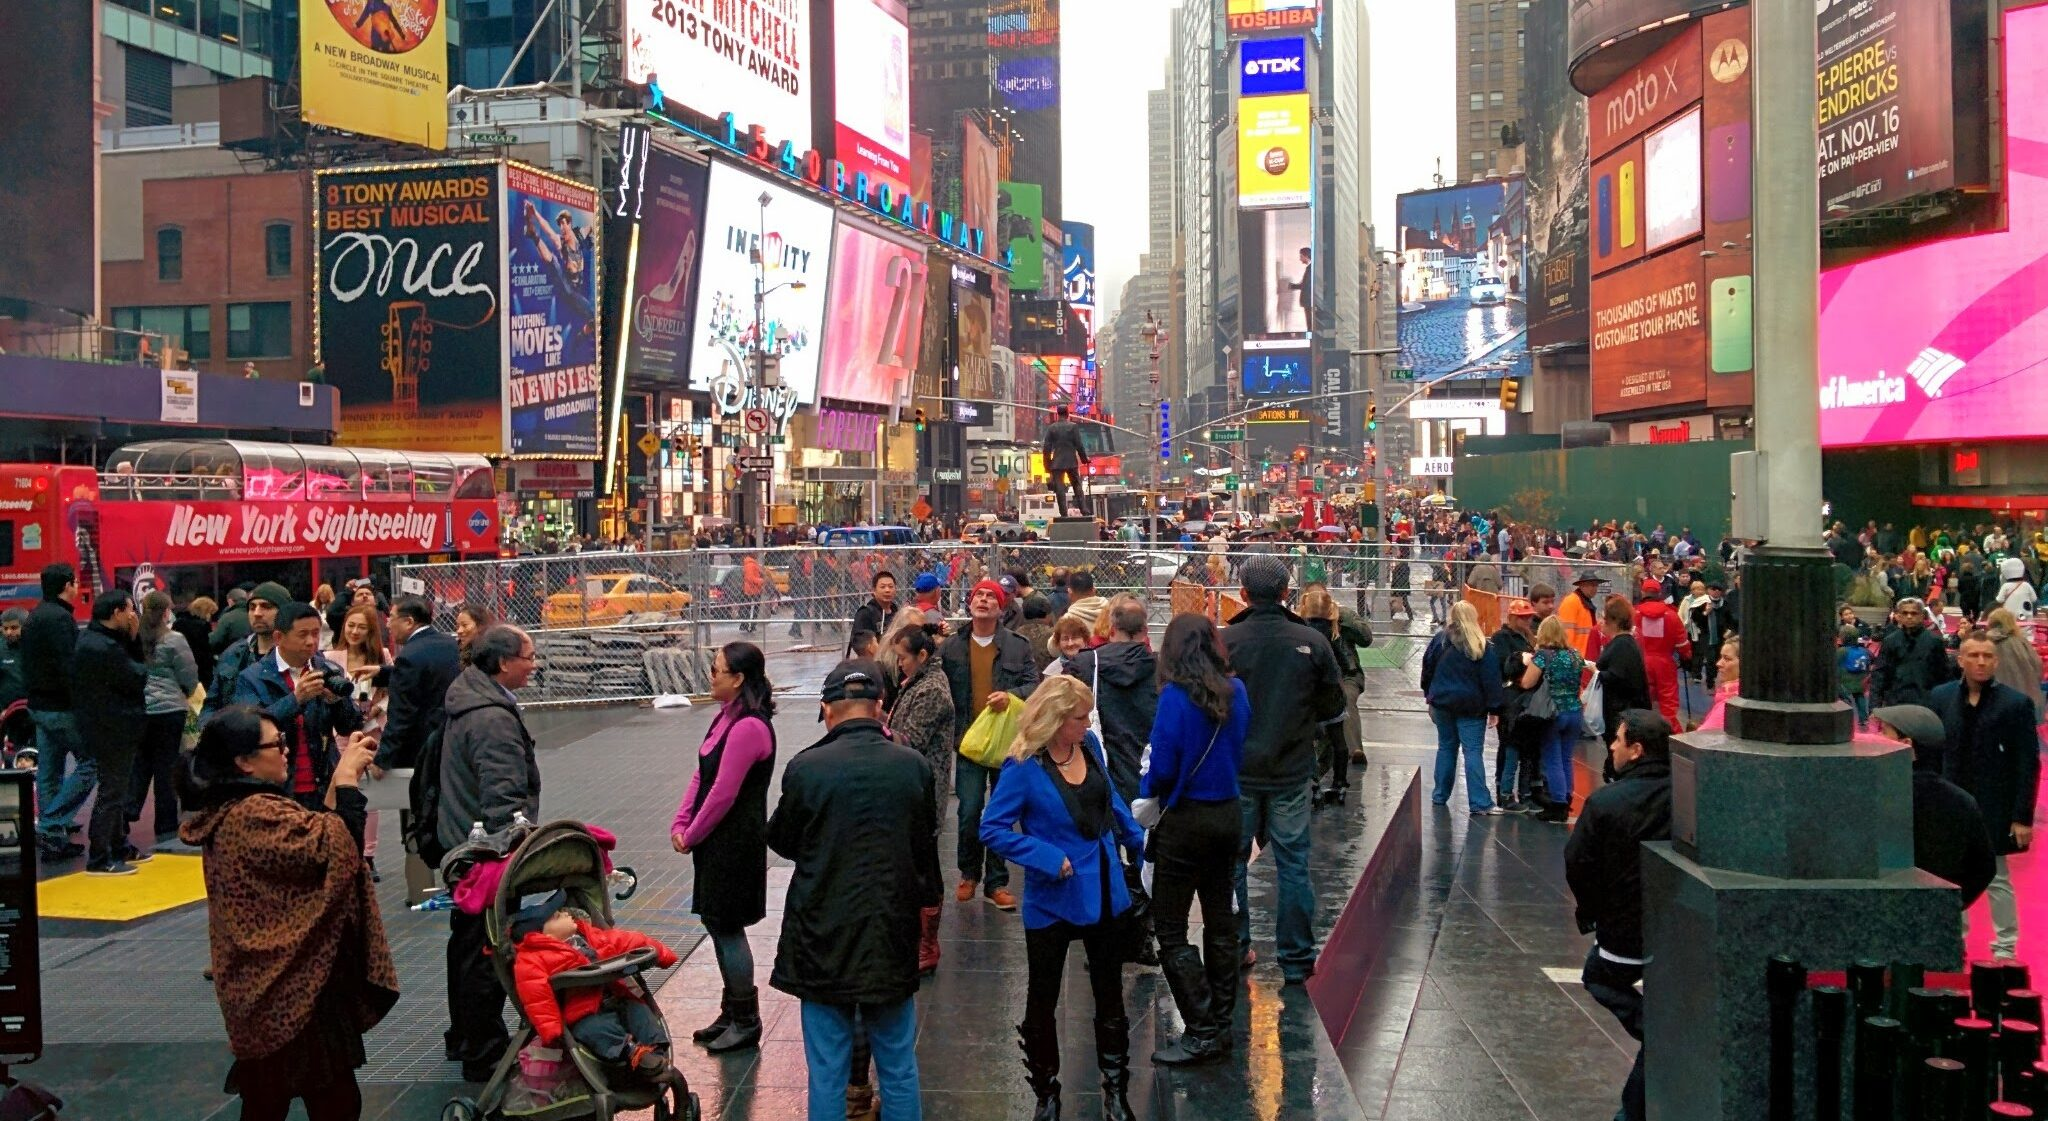 Technical Penguins: A photo of Times Square in NYC shows a lot of billboards and people milling around.